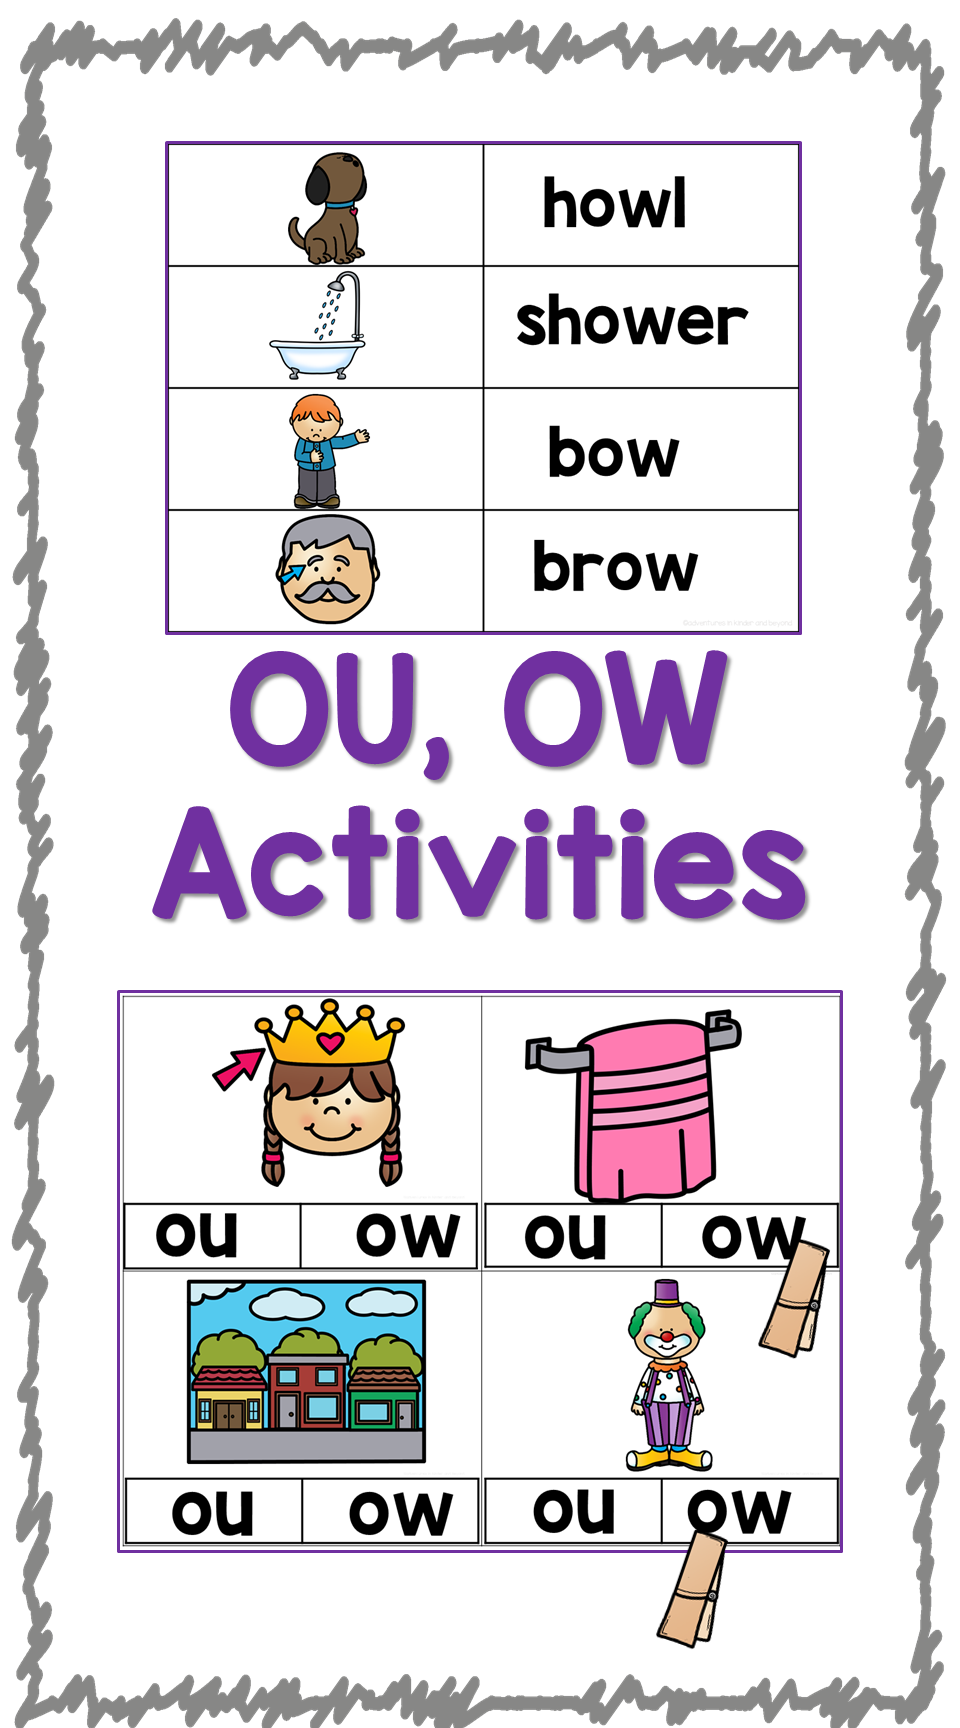 Worksheets Ou Ow Worksheets ou ow diphthong activities and printables phonics adventures have fun practicing the ouow sounds these hands on will engage your students while working this phon